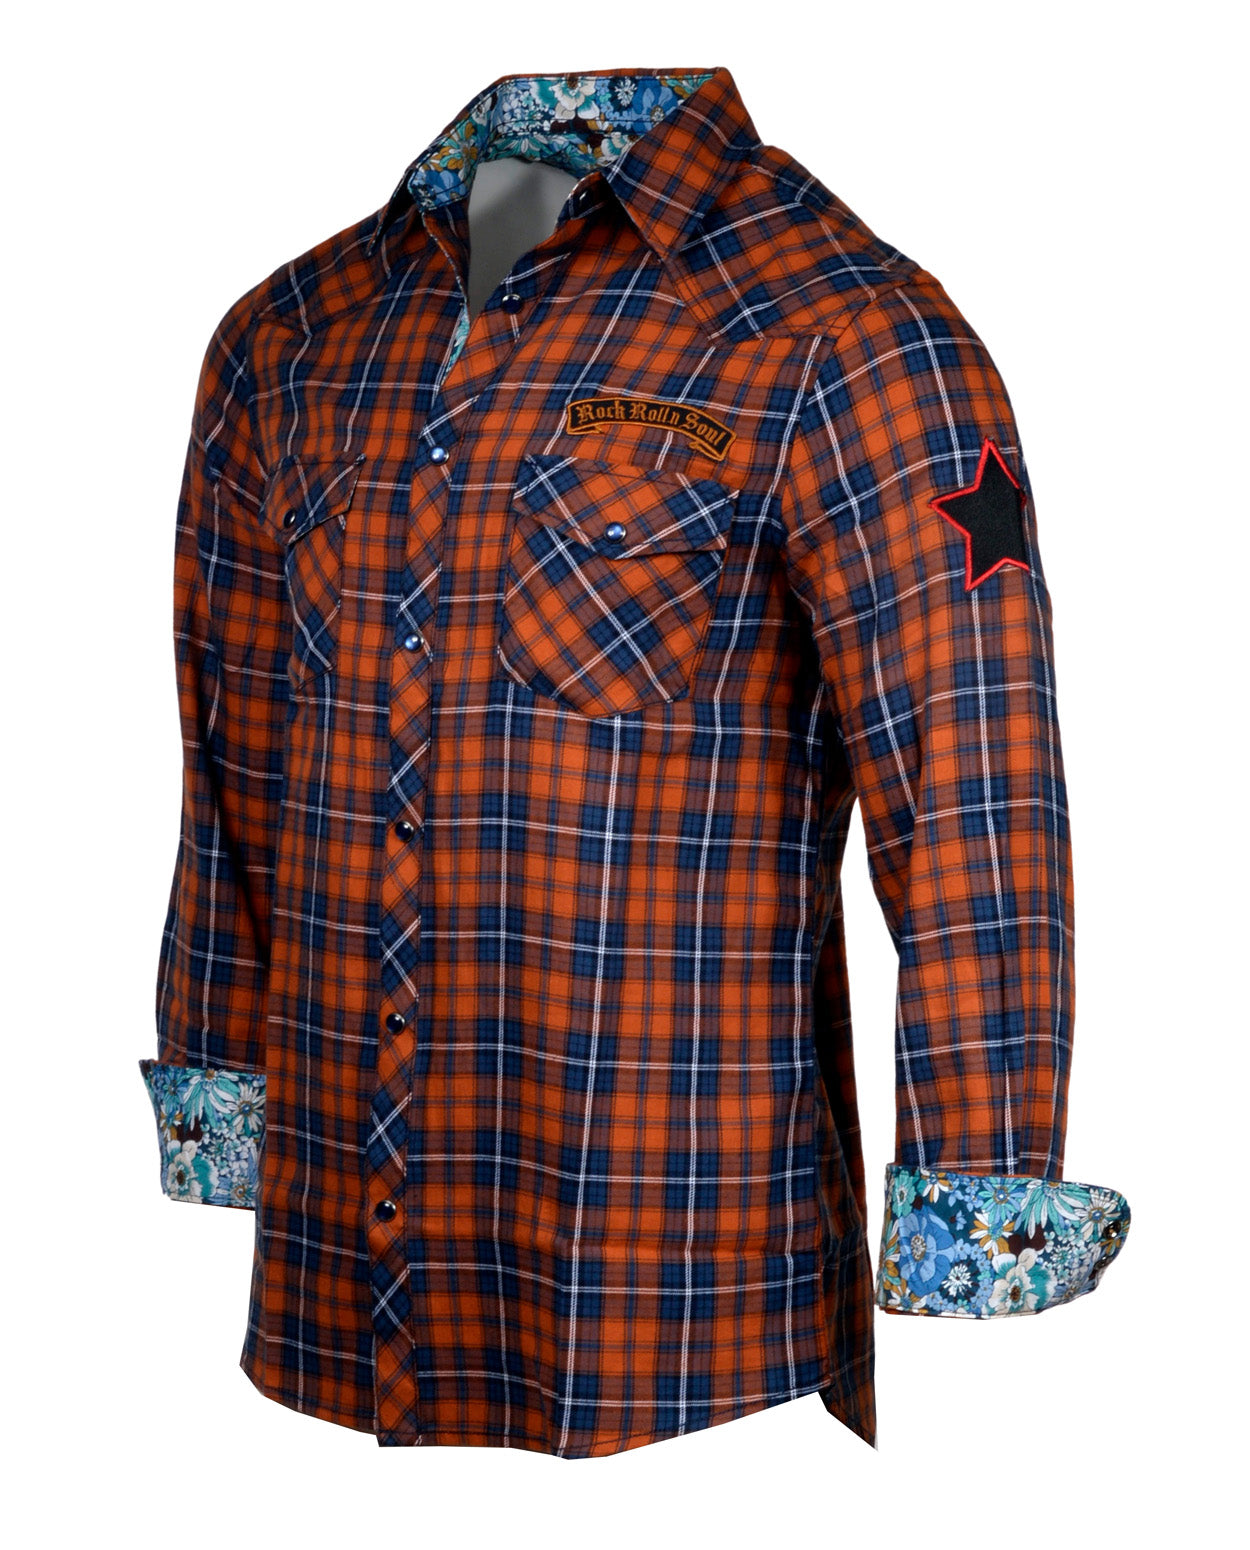 Men's Casual Fashion Button Up Plaid Shirt - Orange  Crush by Rock Roll n Soul1